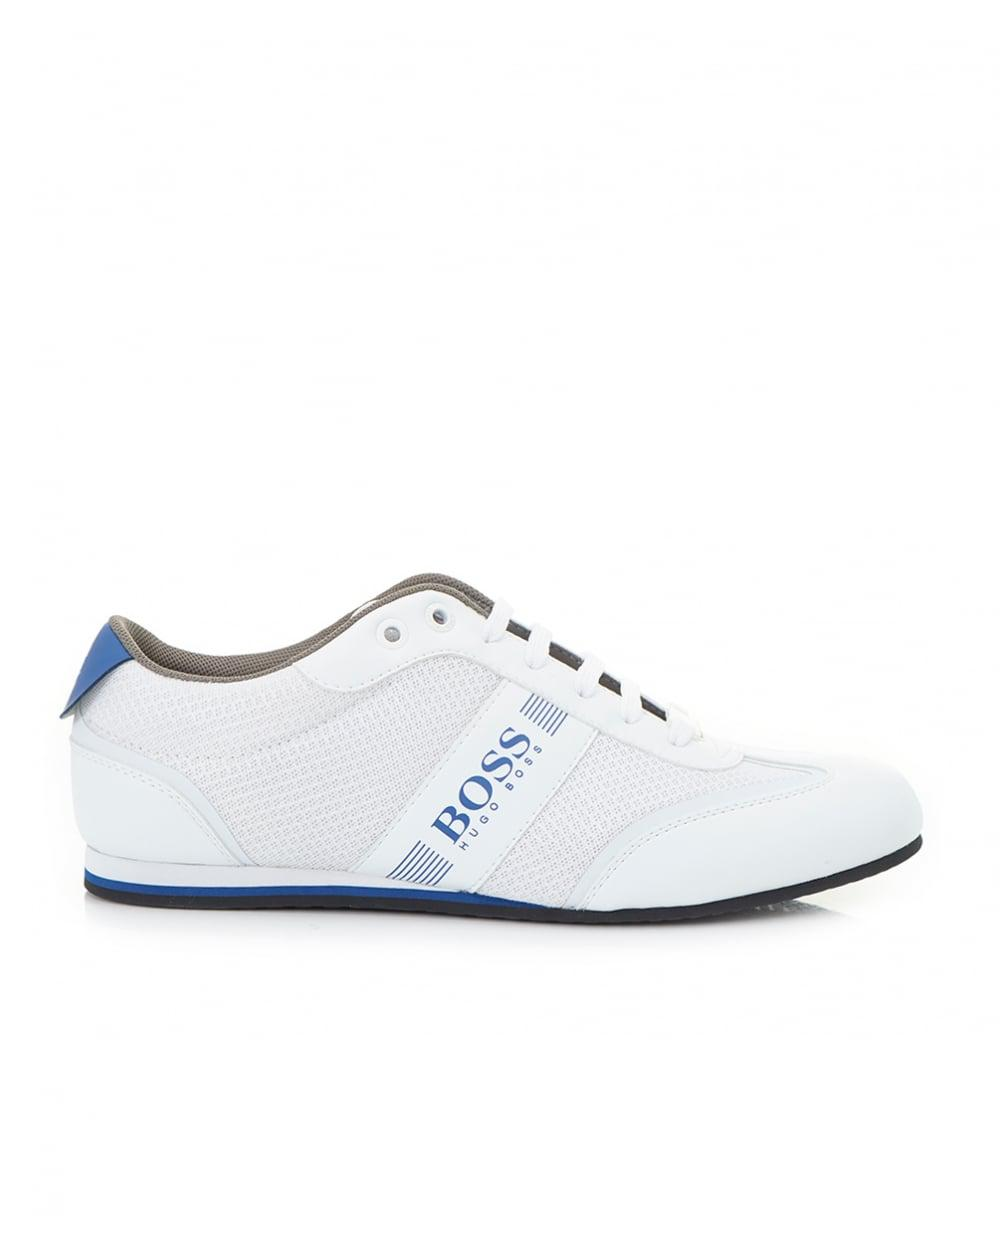 los angeles various design hottest sale Lighter Low Leather Mesh Trainers